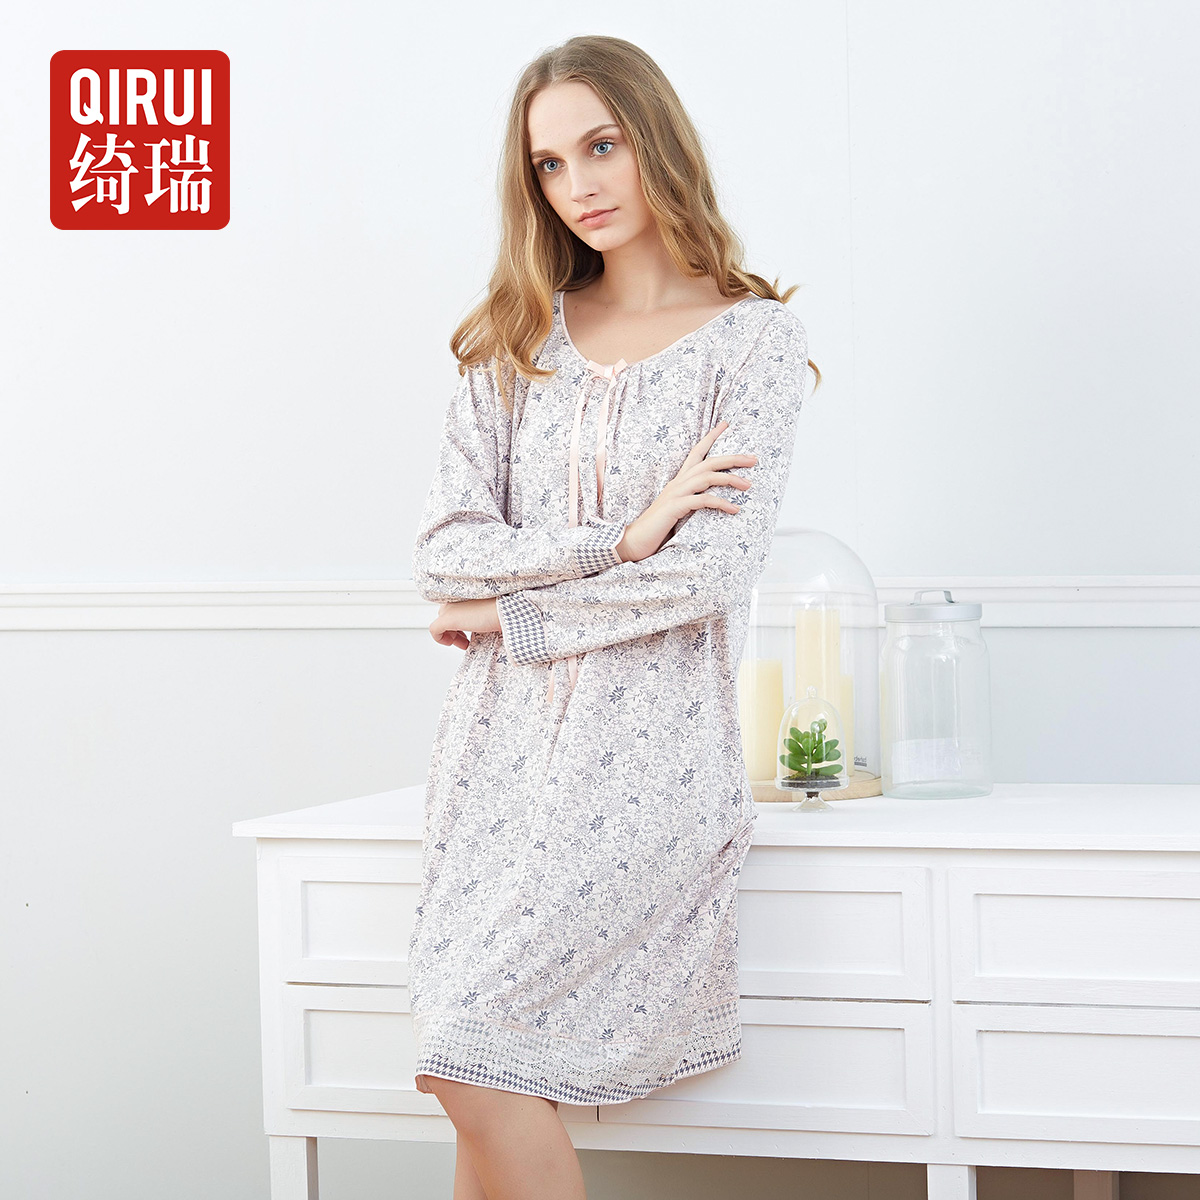 Qi rui pajamas female spring and autumn long sleeve cotton nightgown tracksuit modal female models elegant sweet floral skirt